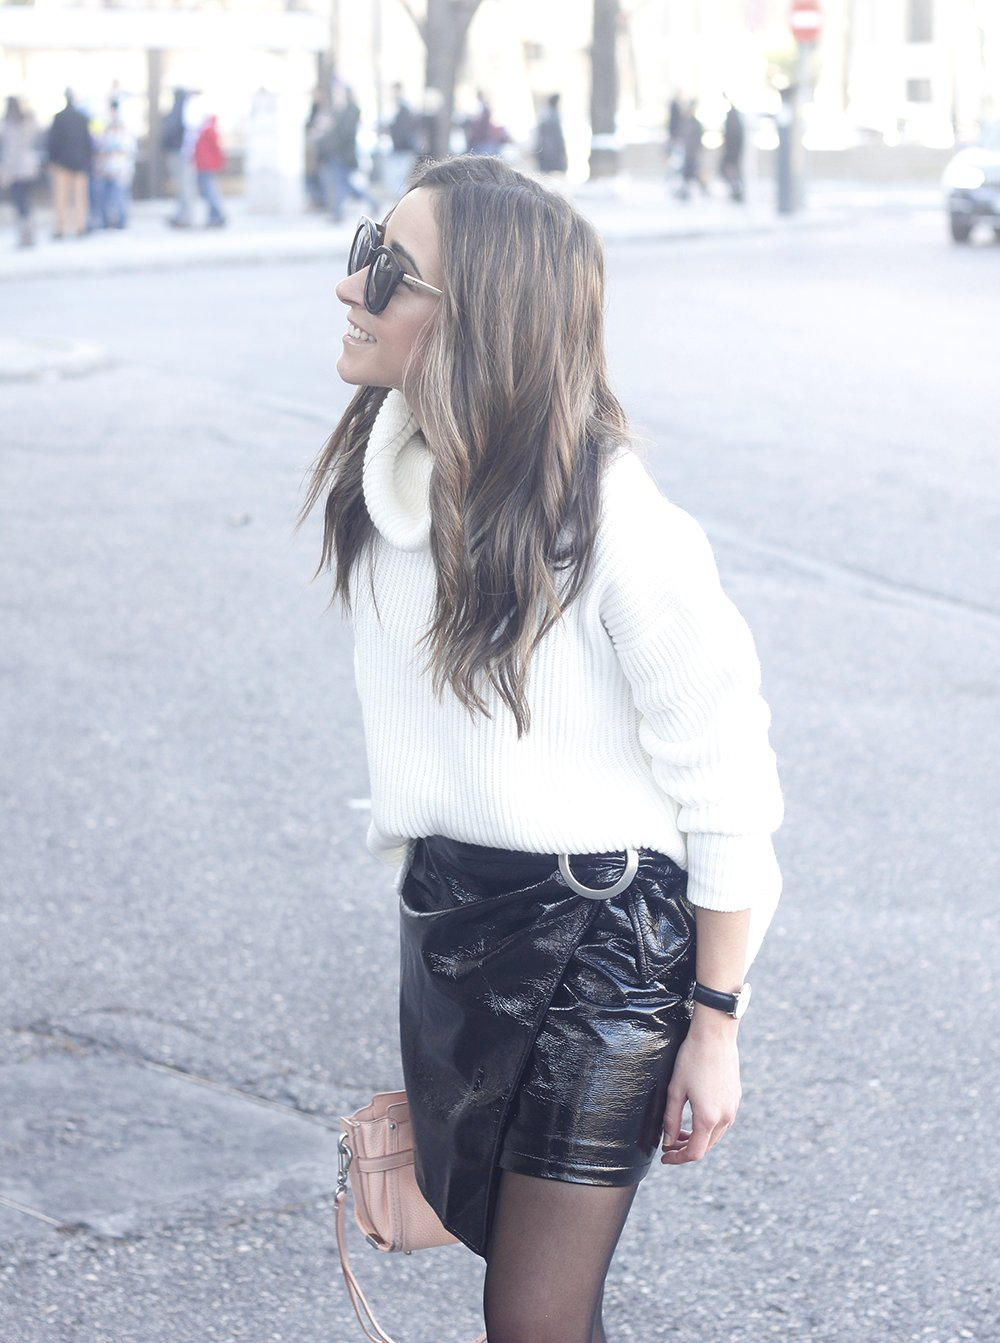 Black Patent leather skirt white sweater coach bag heels outfit style fashion winter15